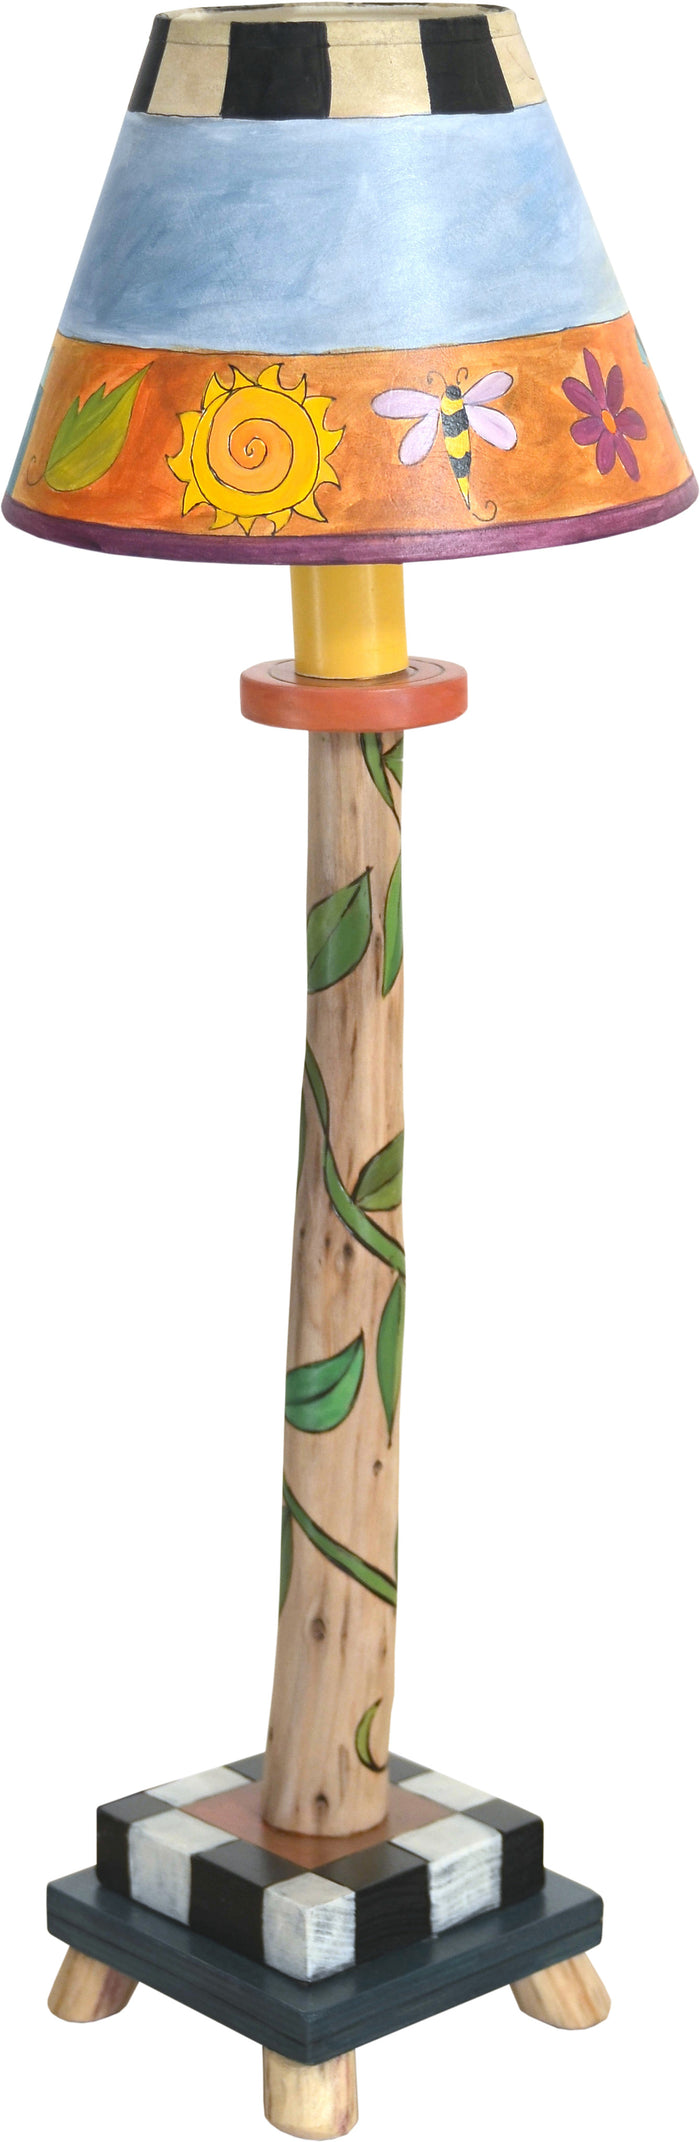 Log Candlestick Lamp